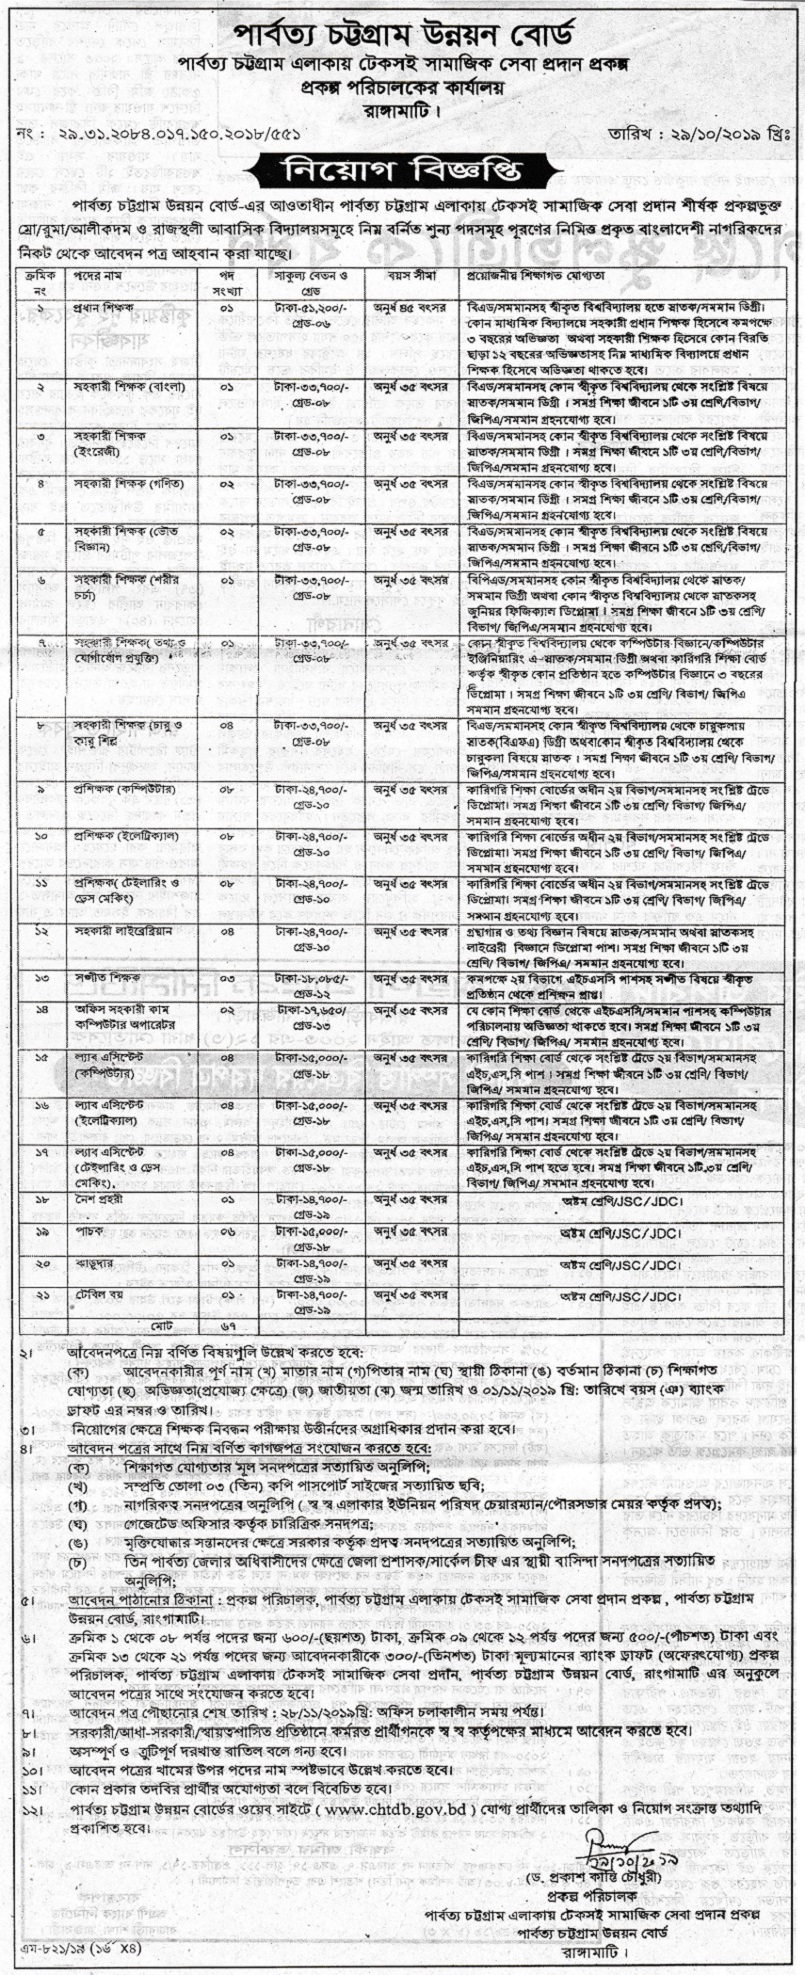 Chittagong Hill Tracts Development Board Job Circular 2019